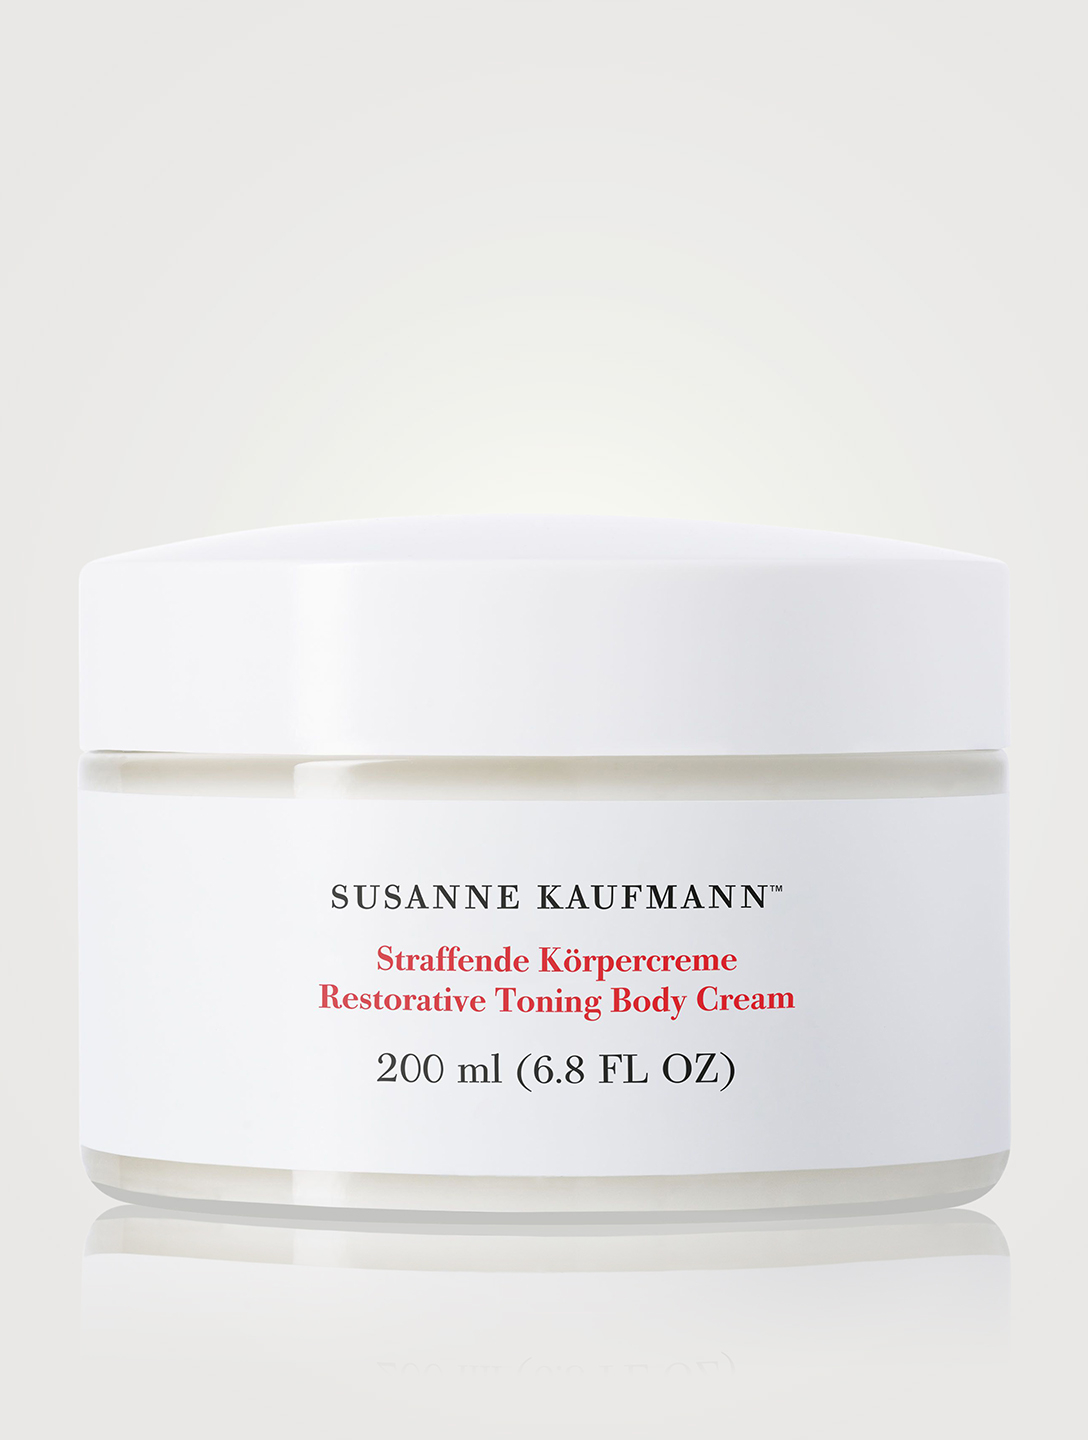 SUSANNE KAUFMANN Restorative Toning Body Cream Beauty